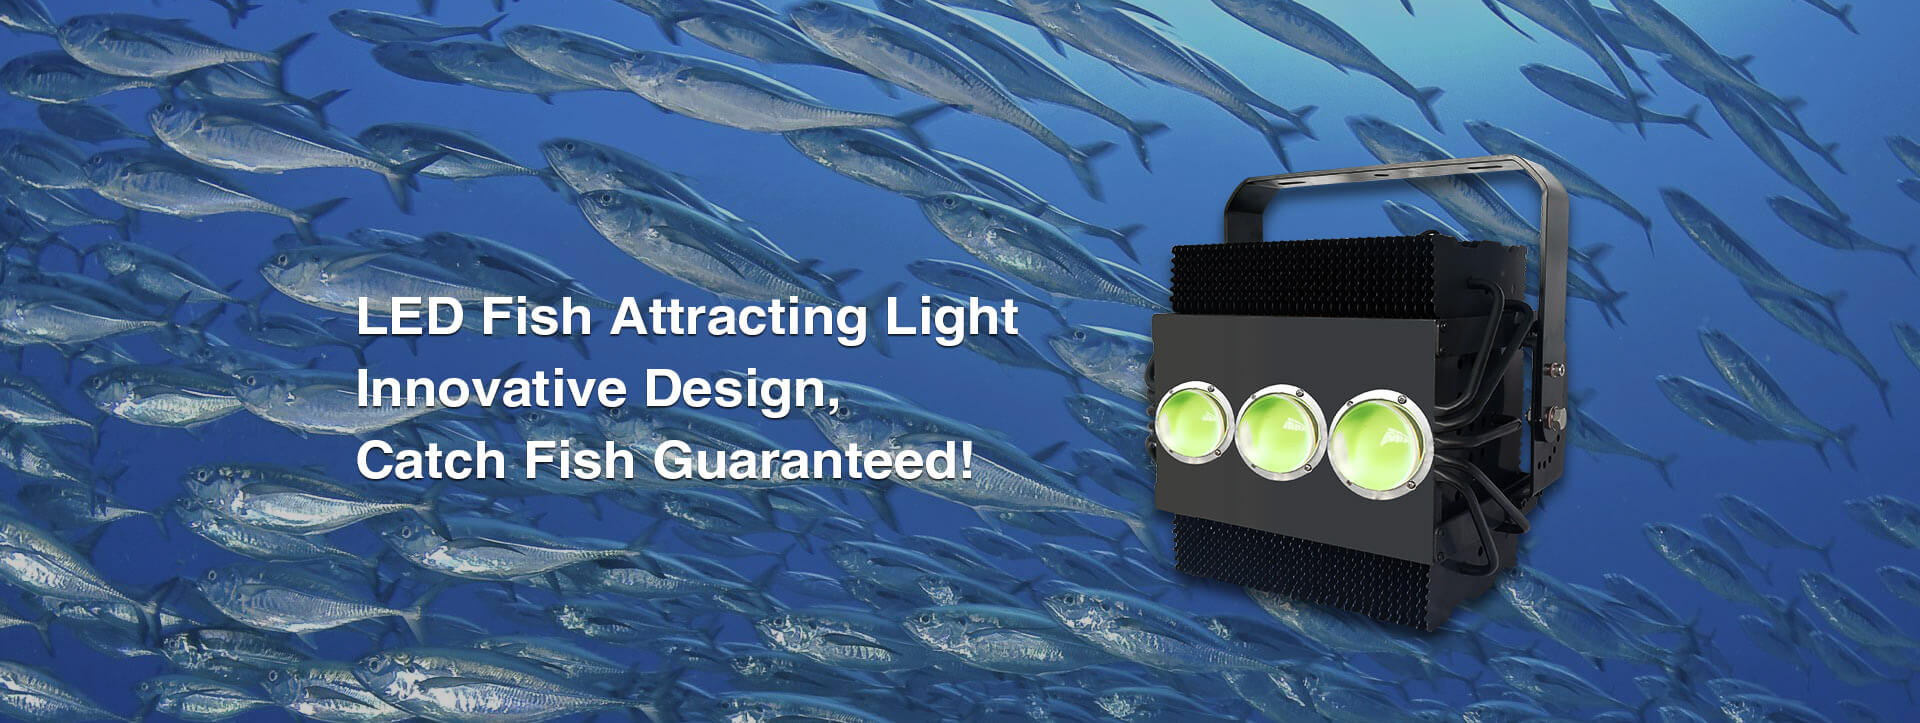 LED Fish-attracting Lights